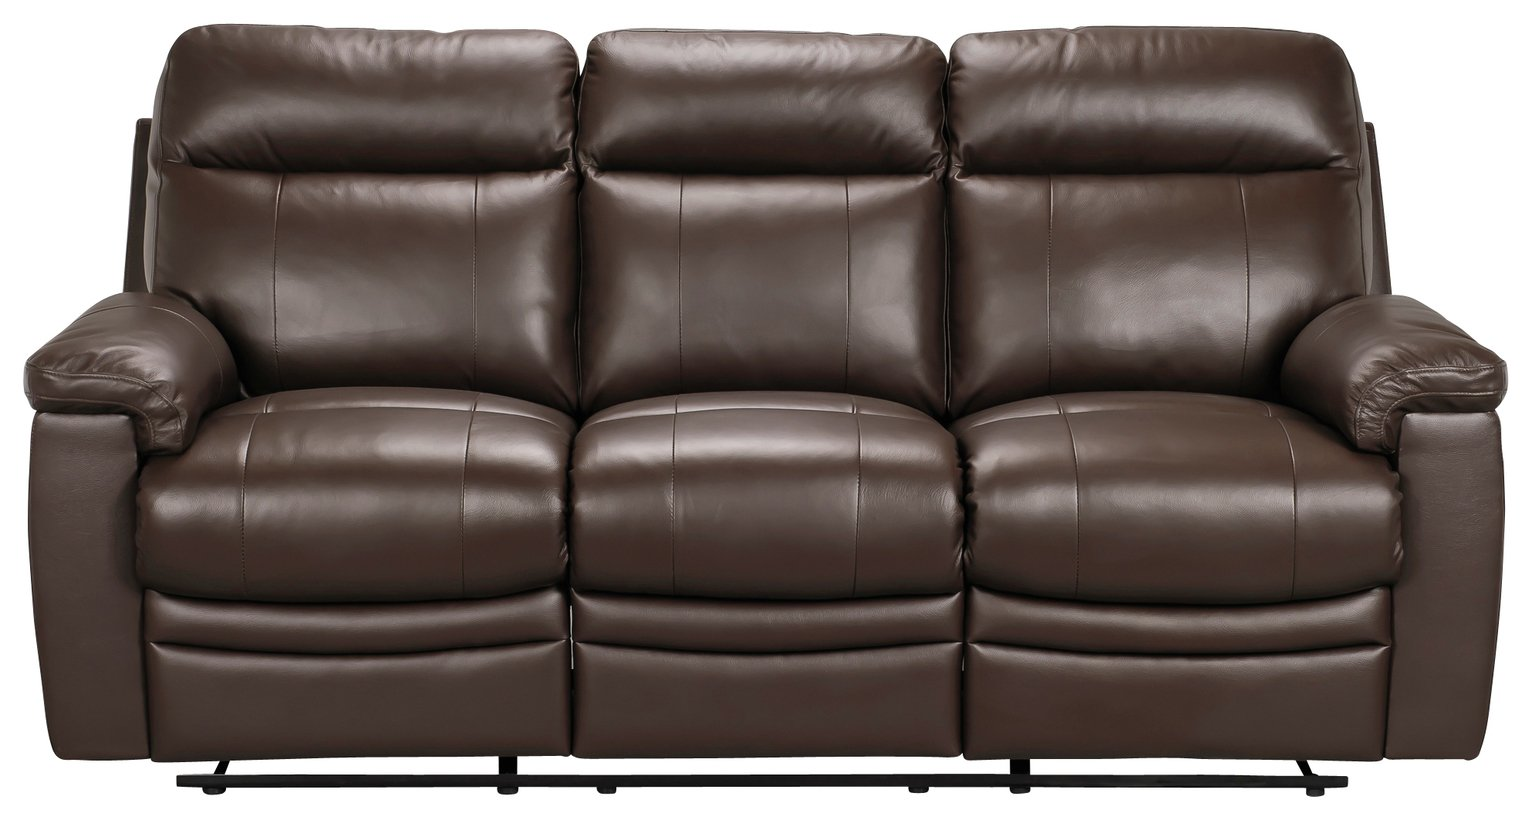 3 seater recliner sofa sale mid century modern microfiber on collection new paolo manual